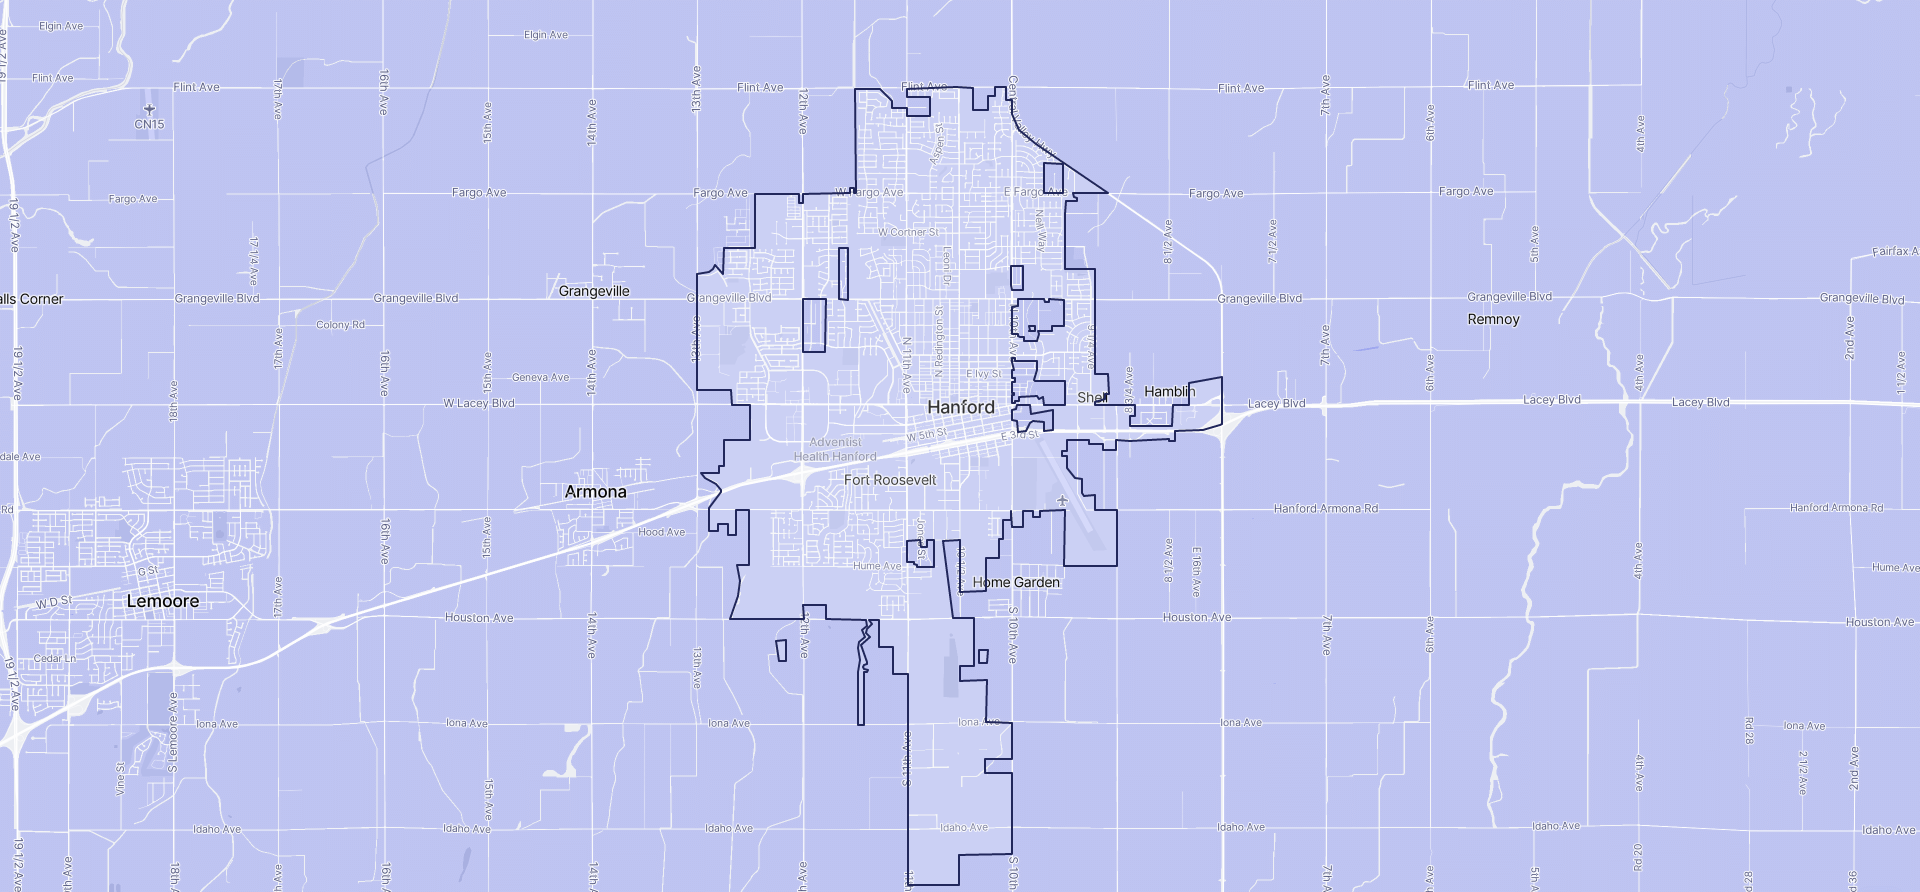 Image of Hanford boundaries on a map.